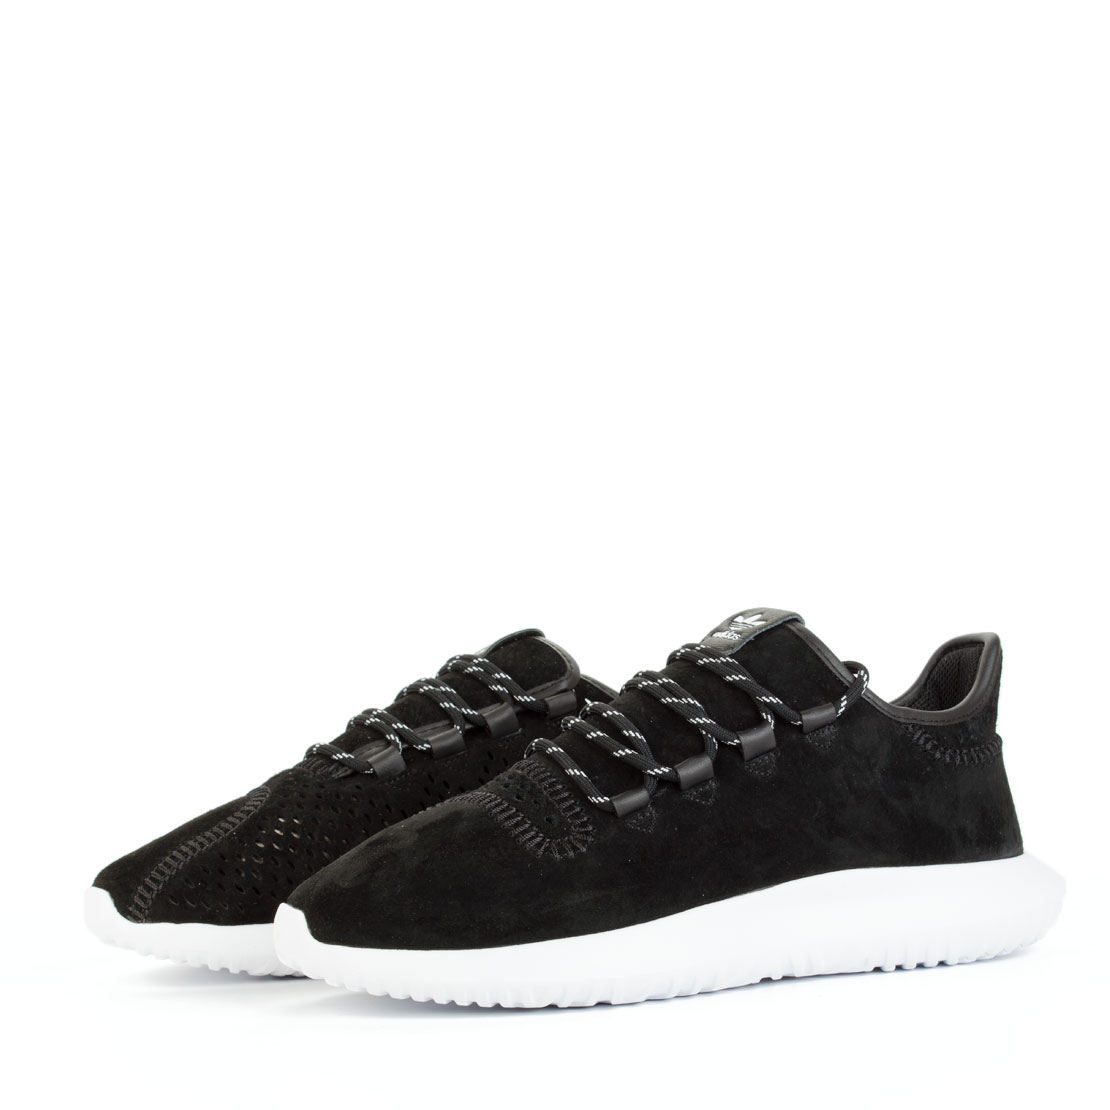 finest selection d2e3a 47bd7 Tubular Shadow Core Black - Sneakerholic Vietnam